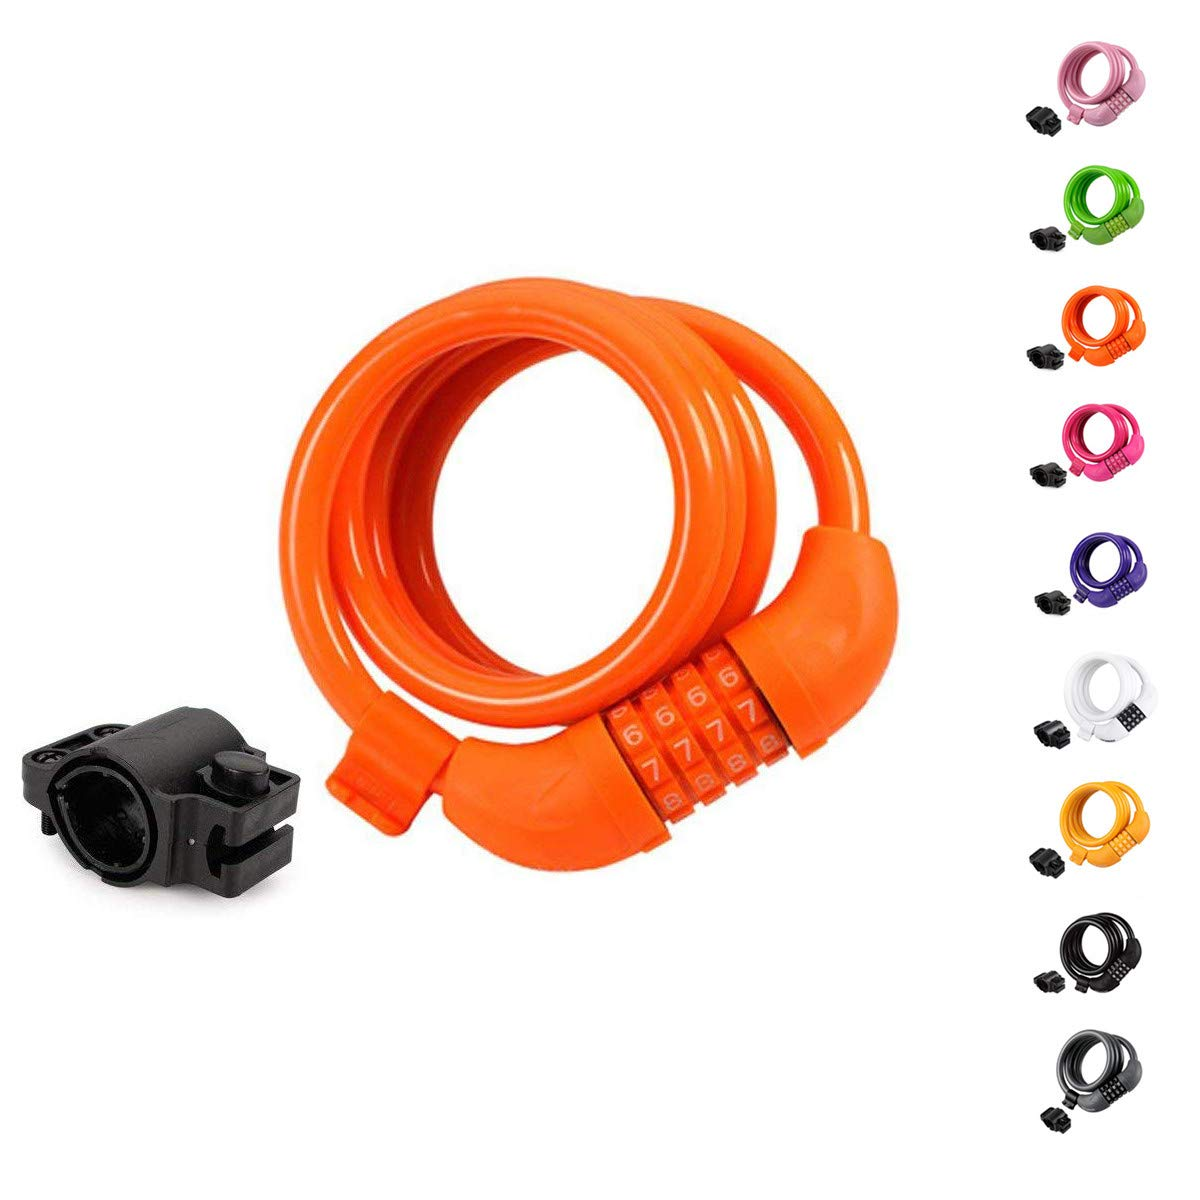 4-Feet Bike Cable Basic Self Coiling Resettable Combination Cable Bike Locks with Complimentary Mounting Bracket, Bike Lock Cable 4 Feet, 5 Feet, 6 Feet